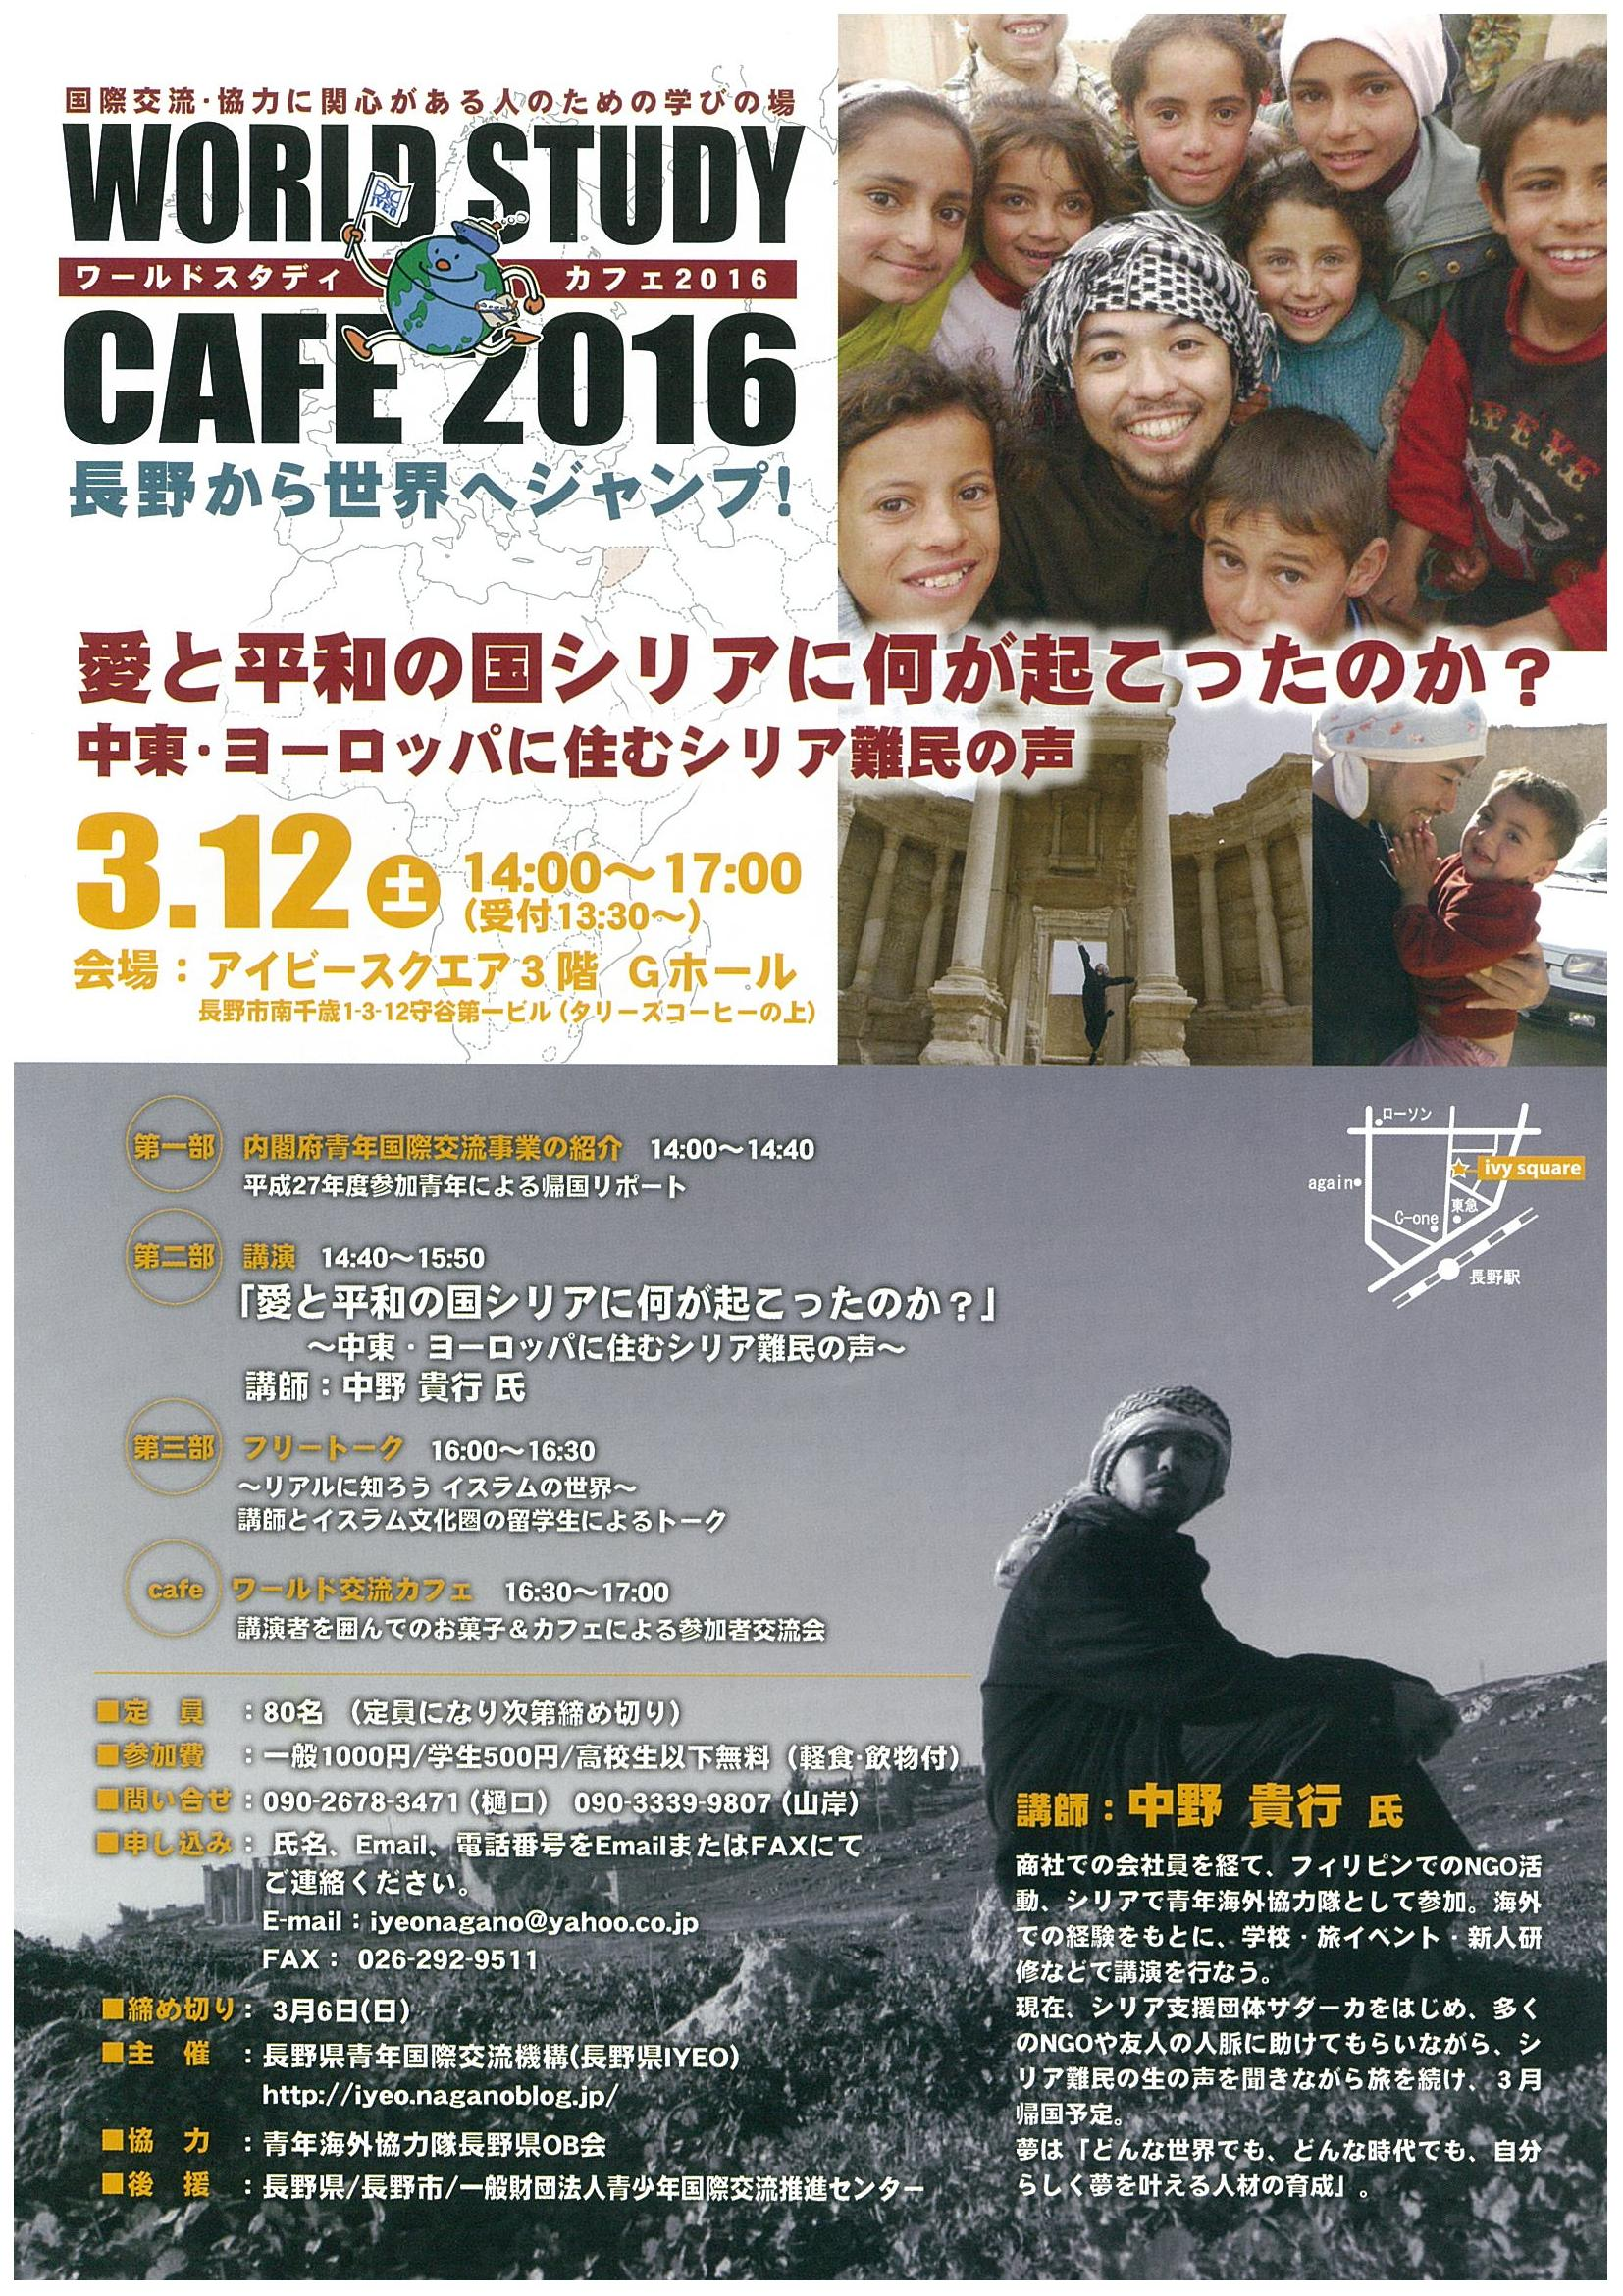 World Study Cafe